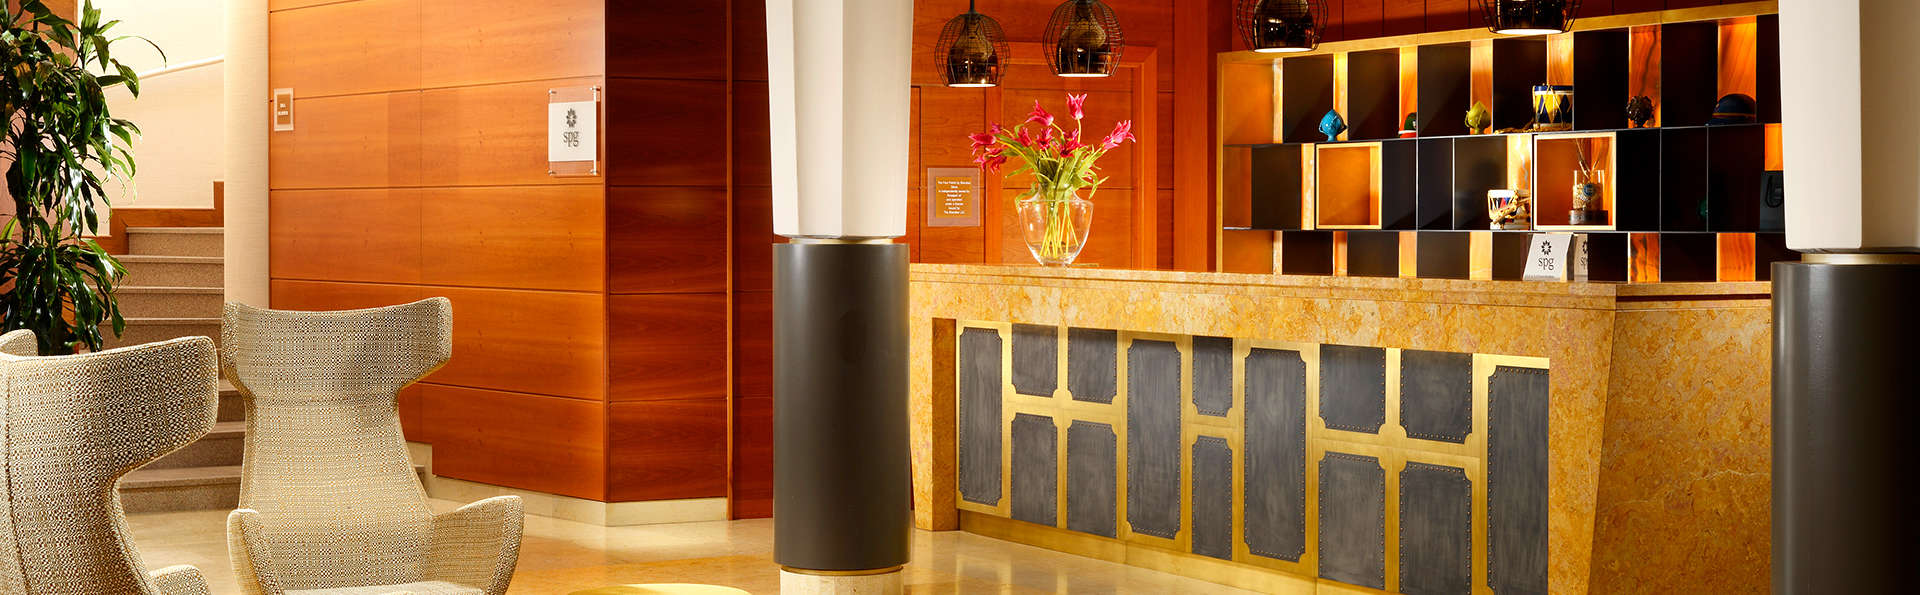 Four Points by Sheraton Siena - EDIT_NEW_RECEPTION.jpg